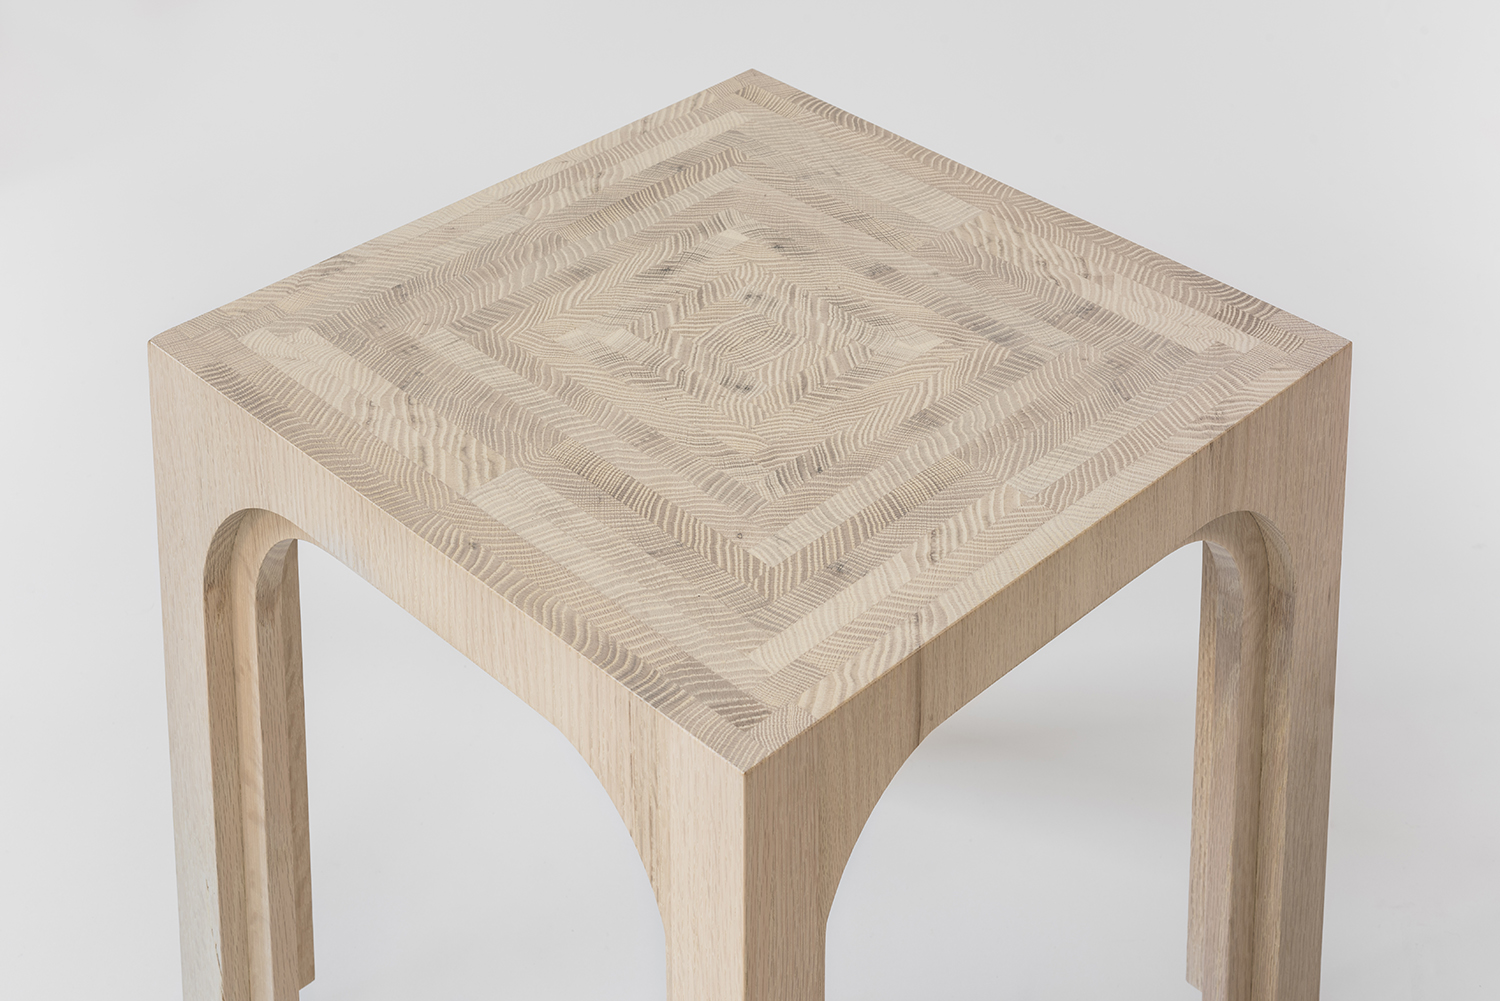 ARc red oak top.jpg